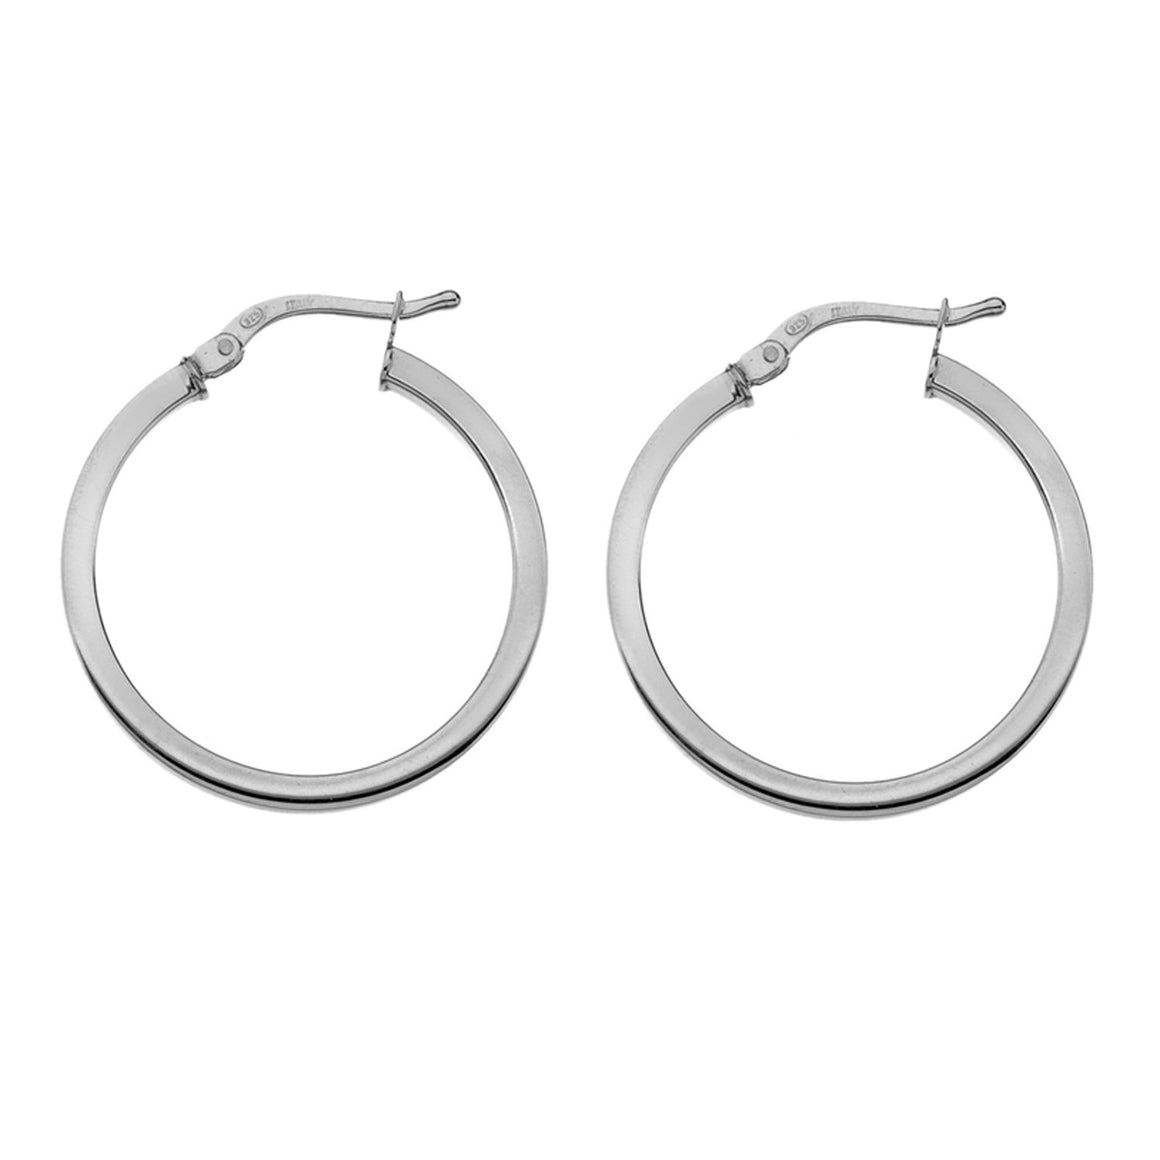 Edge Only 20mm Square wire hoops in sterling silver